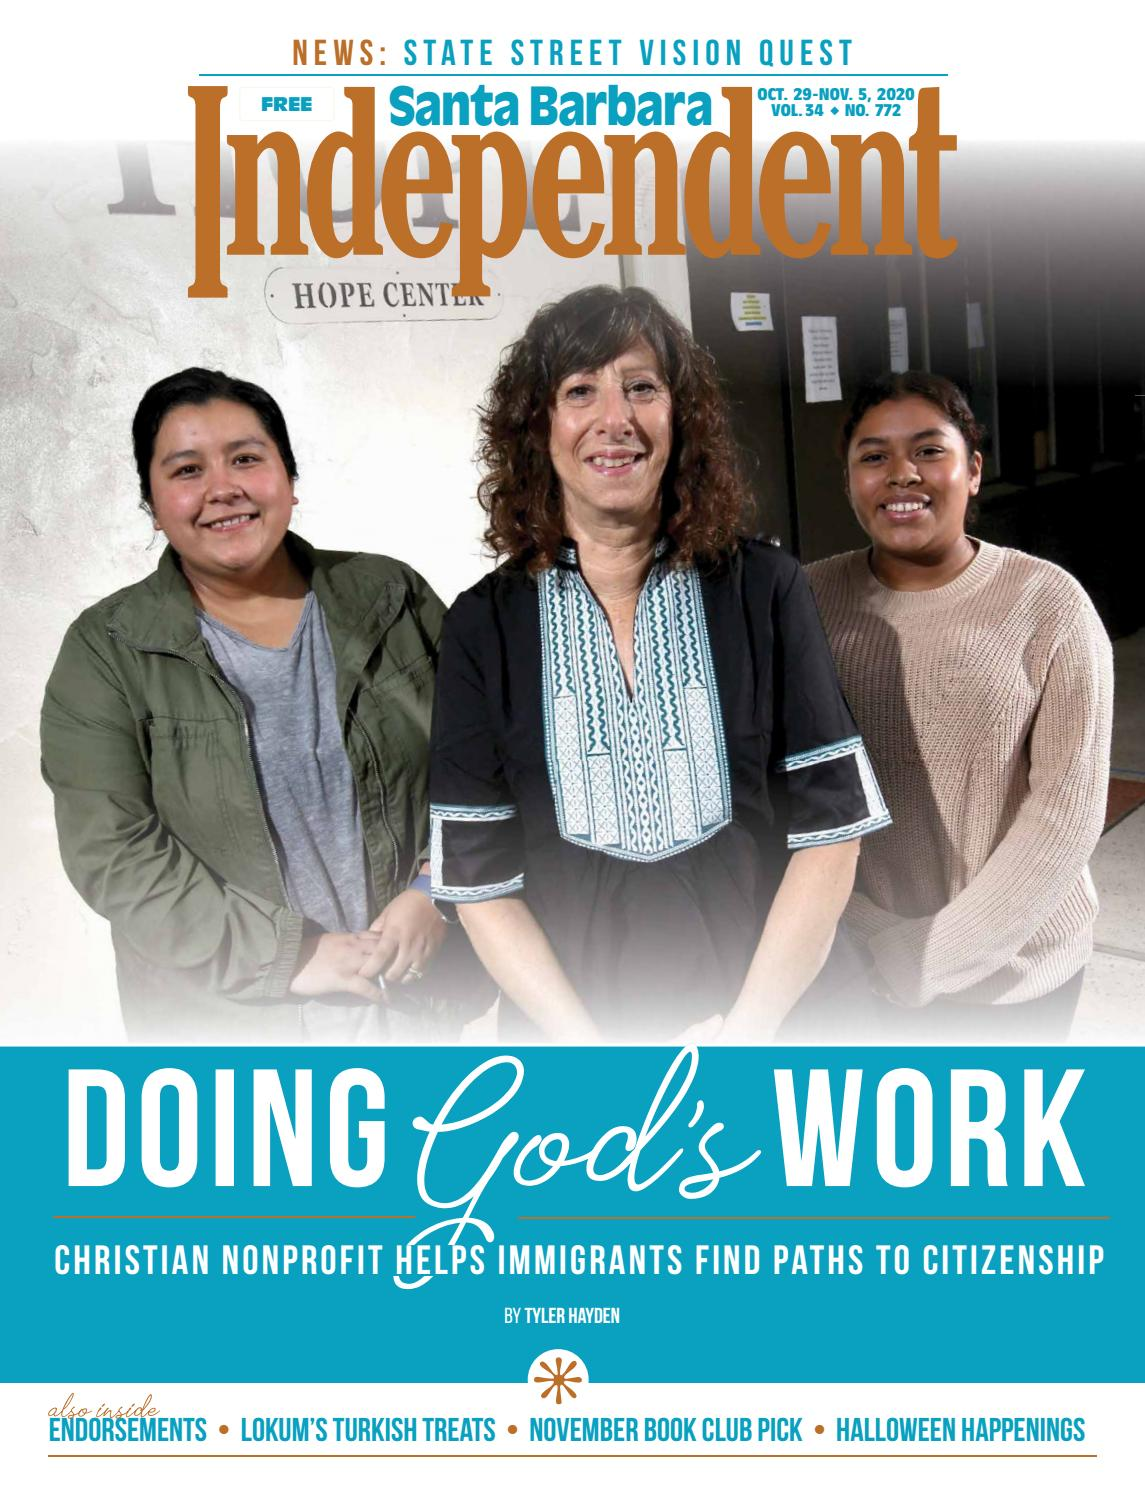 Santa Barbara Independent 10 29 20 By Sb Independent Issuu